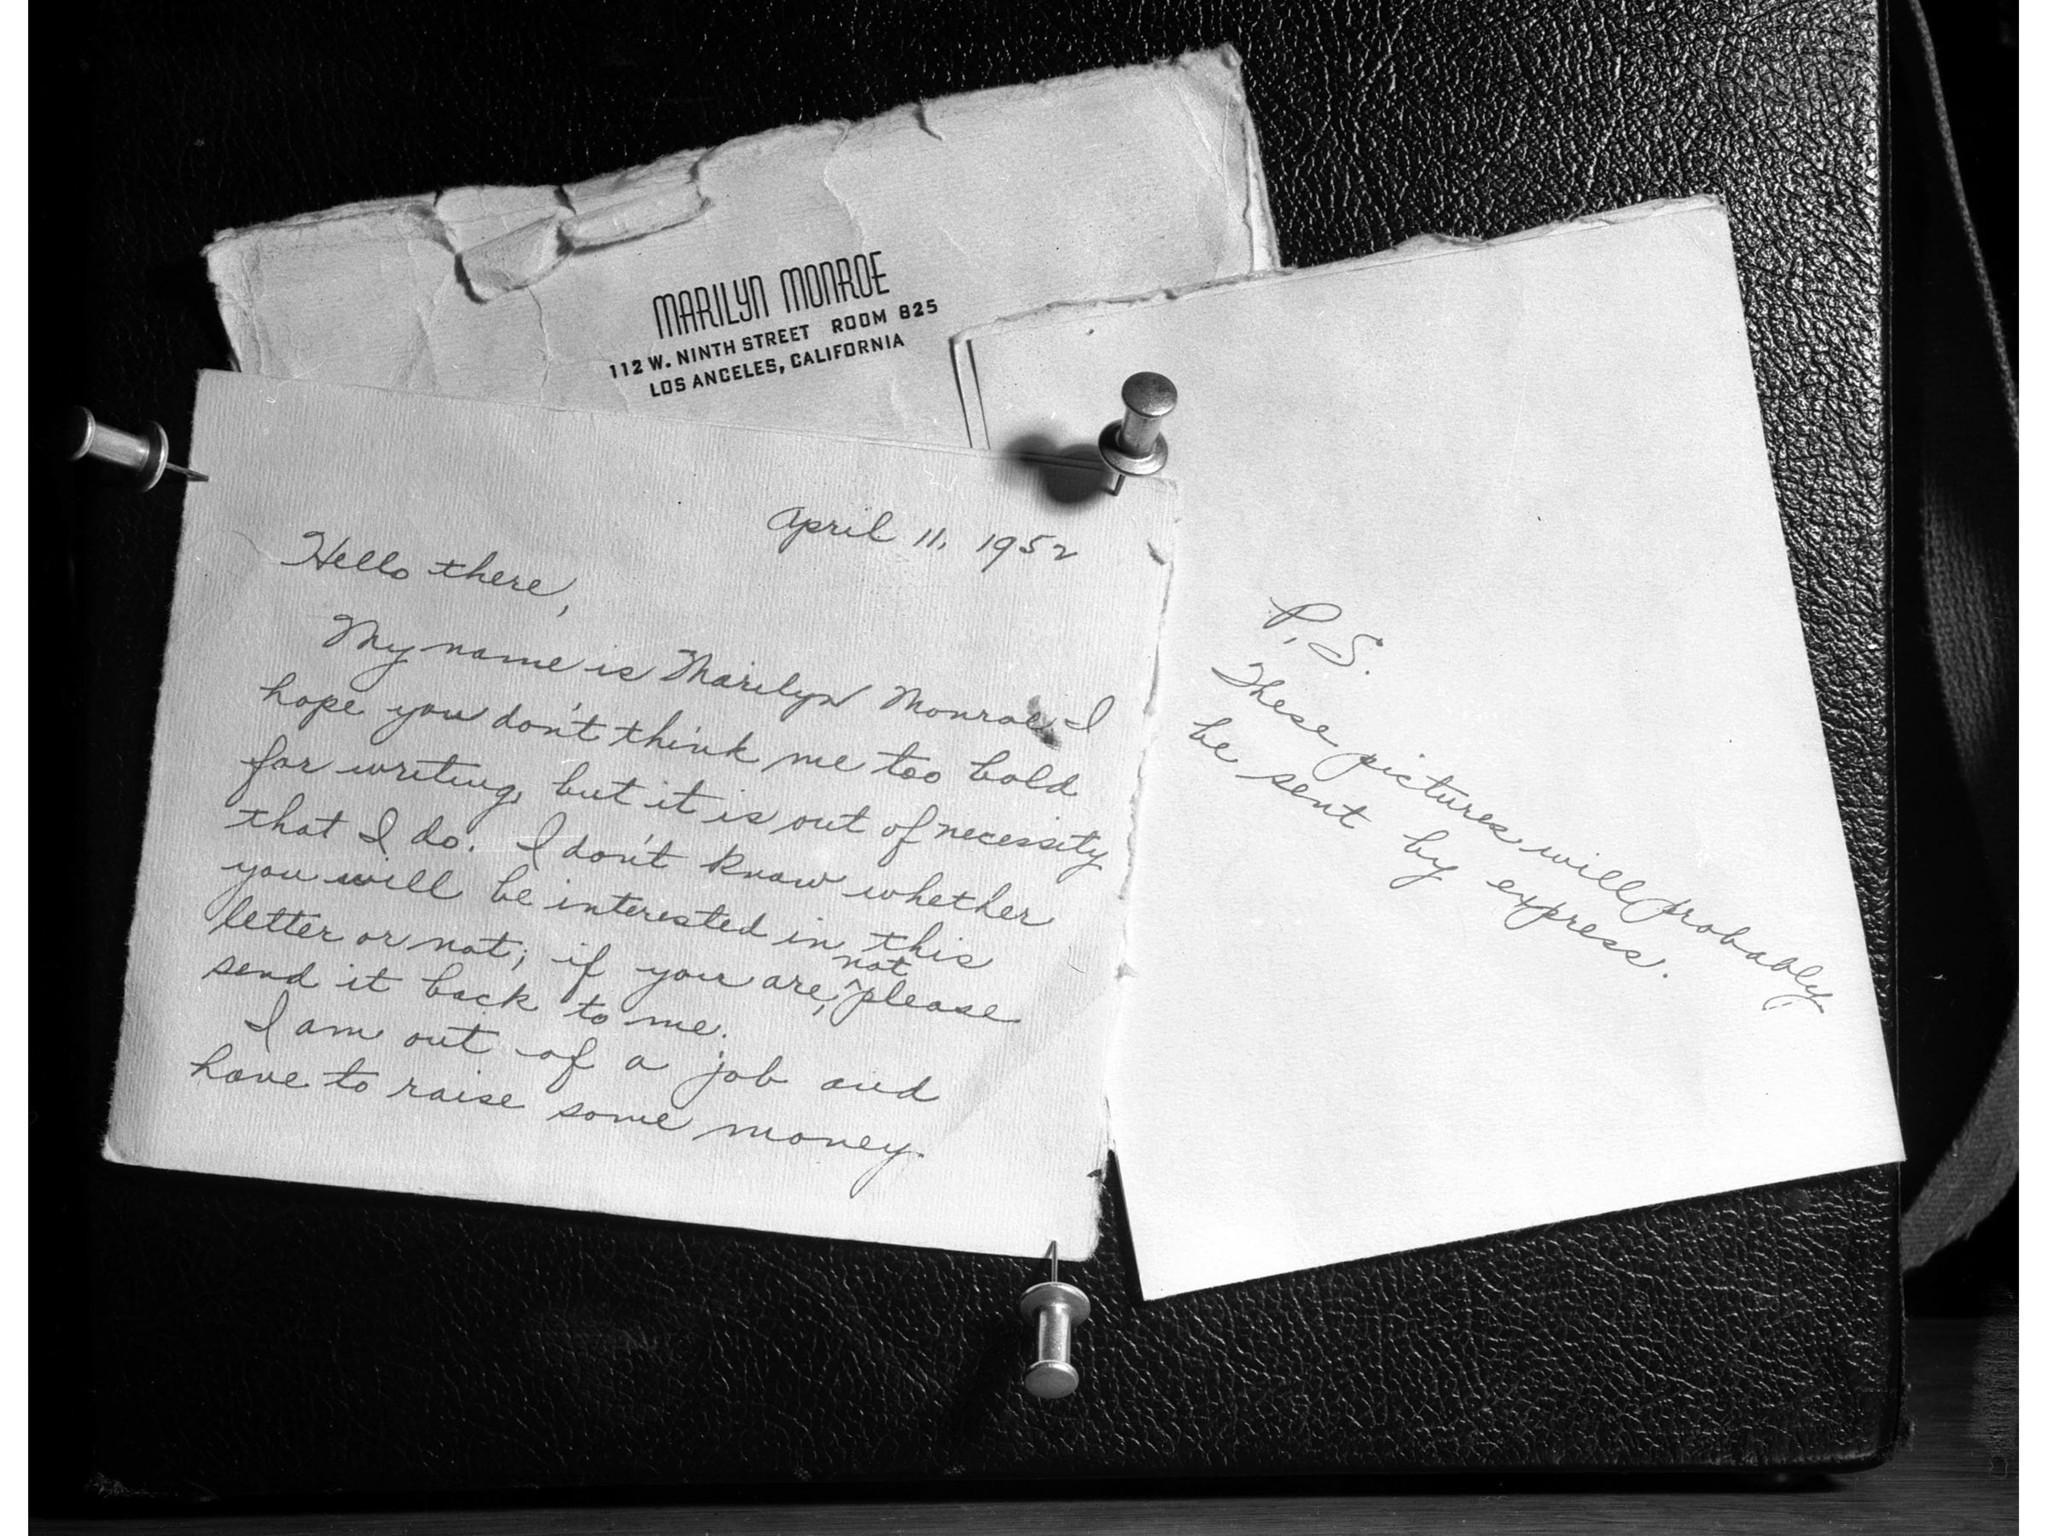 June 26, 1952: Letter entered into evidence during trial against Jerry Karpman and Morrie Kaplan who